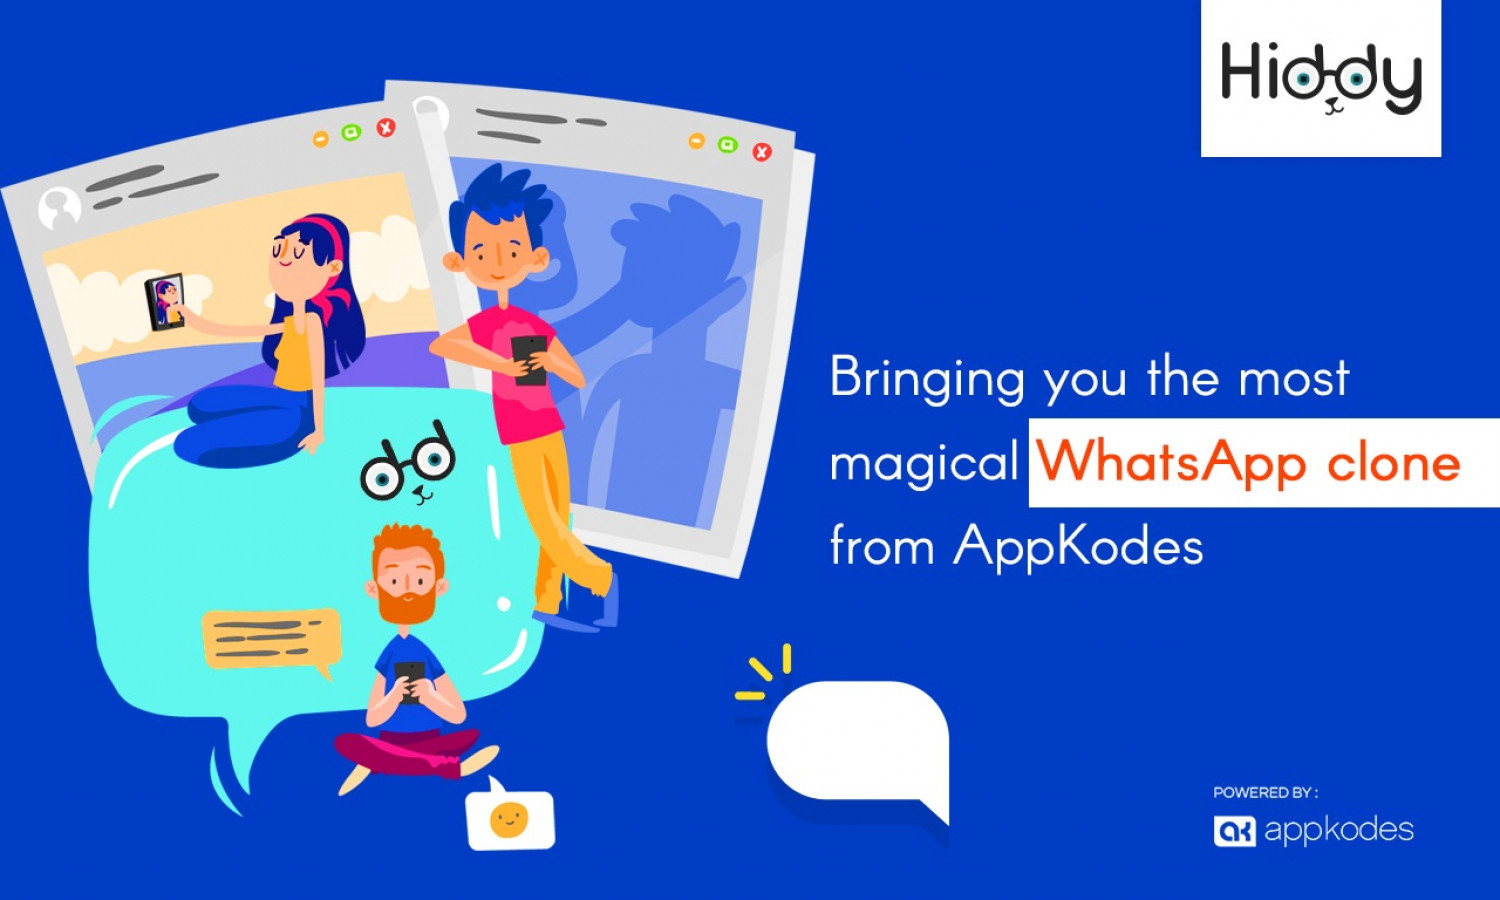 Bringing you the most magical whatsapp from appkodes Infographic